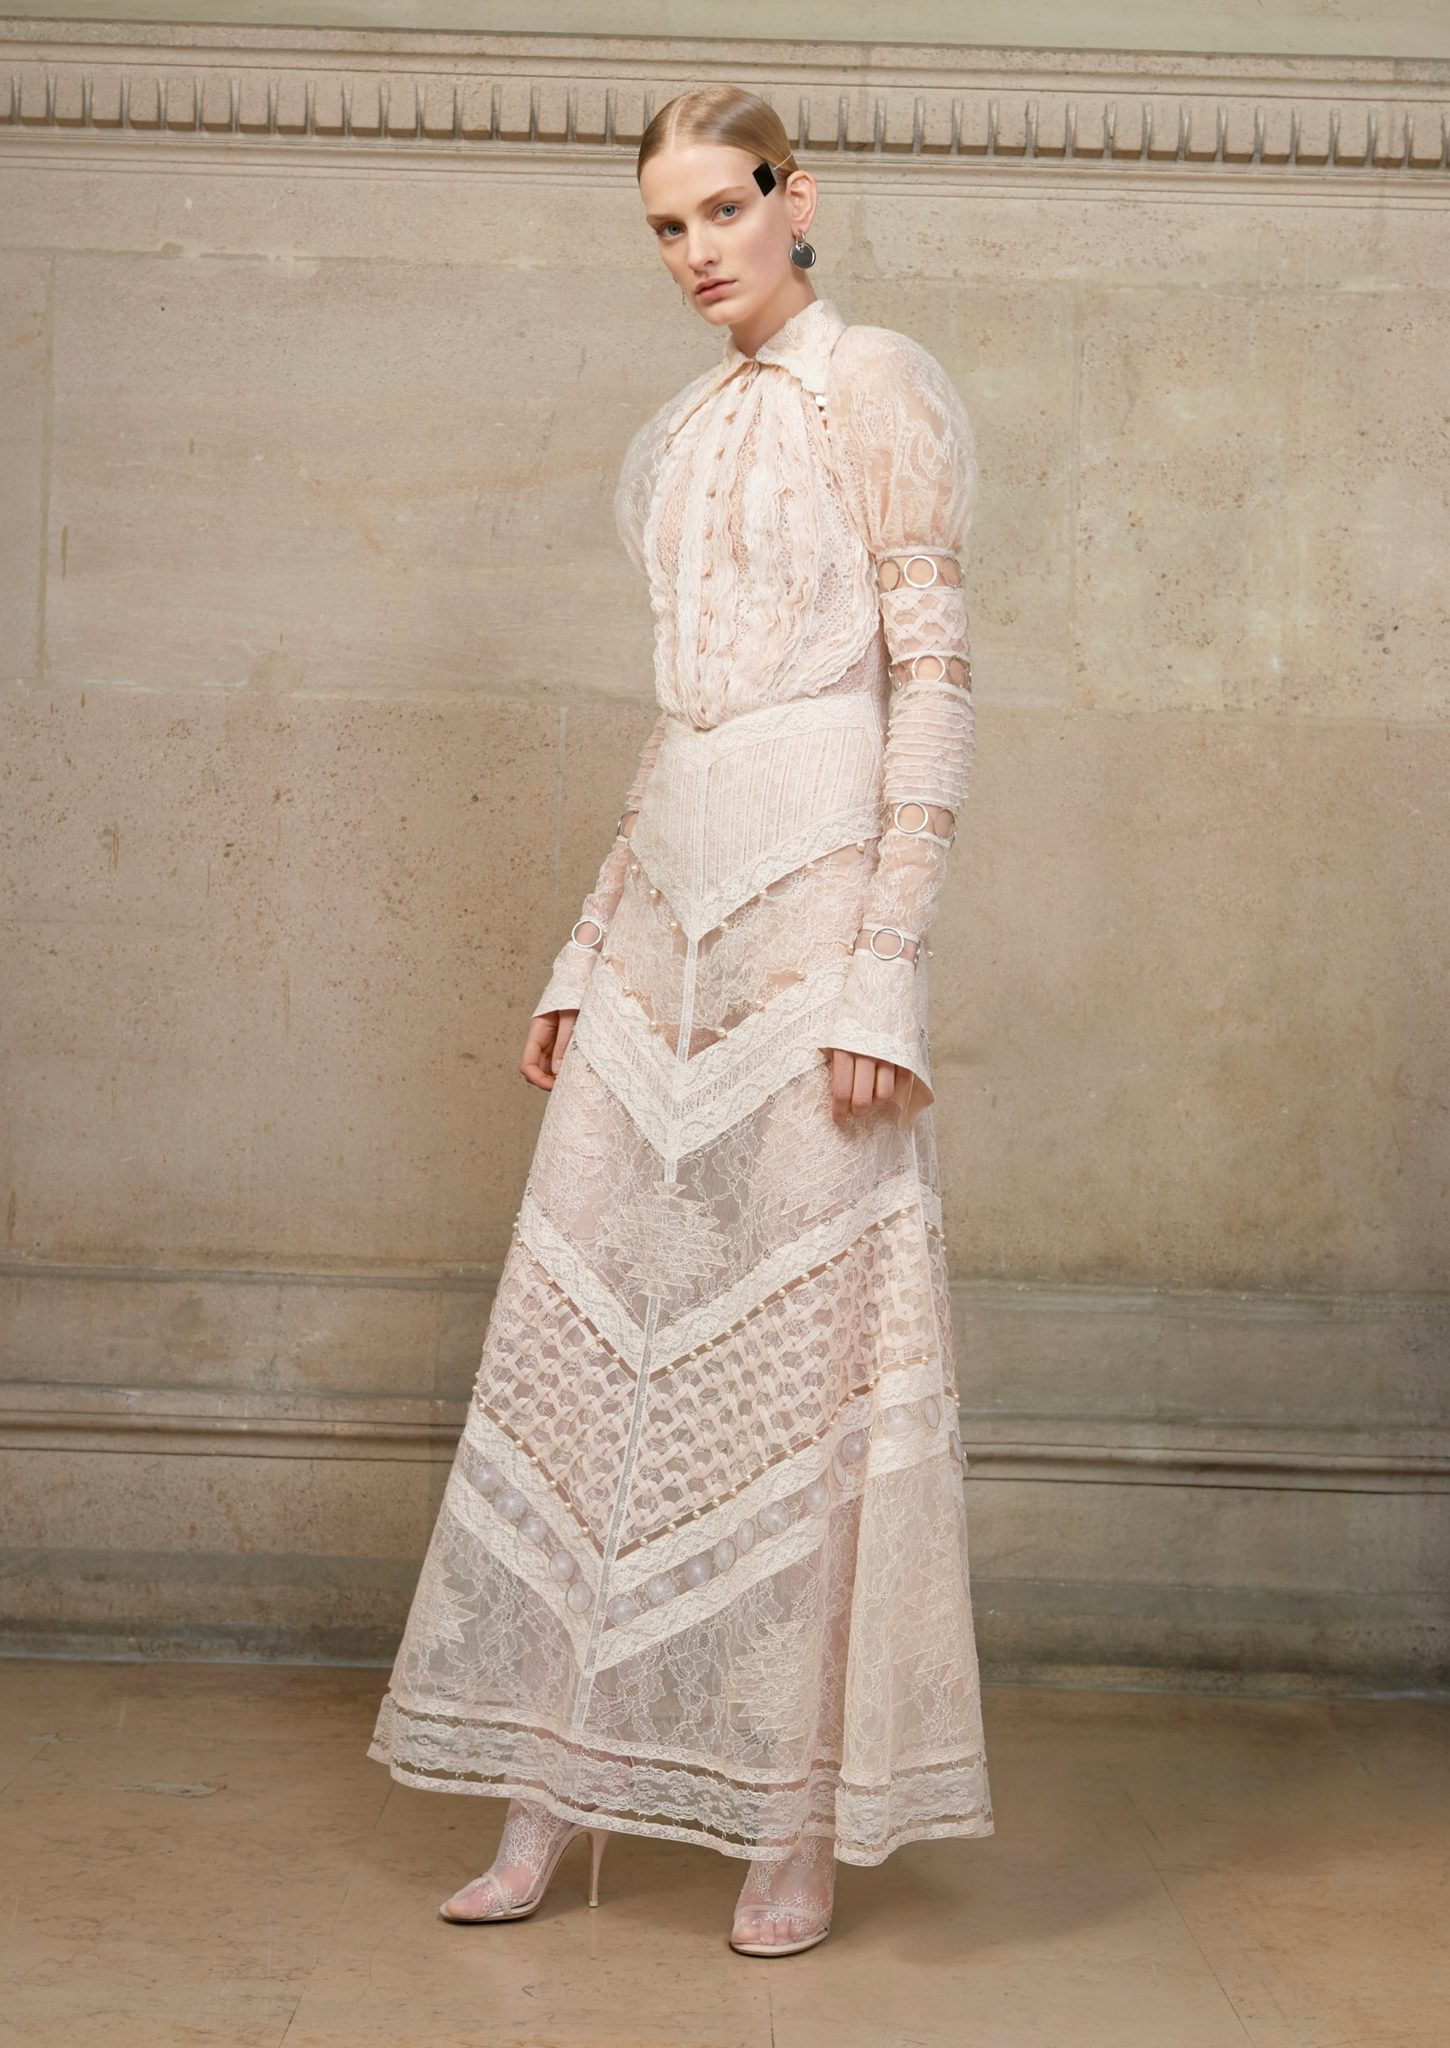 Givenchy spring 2017 haute couture collection les fa ons for Haute couture